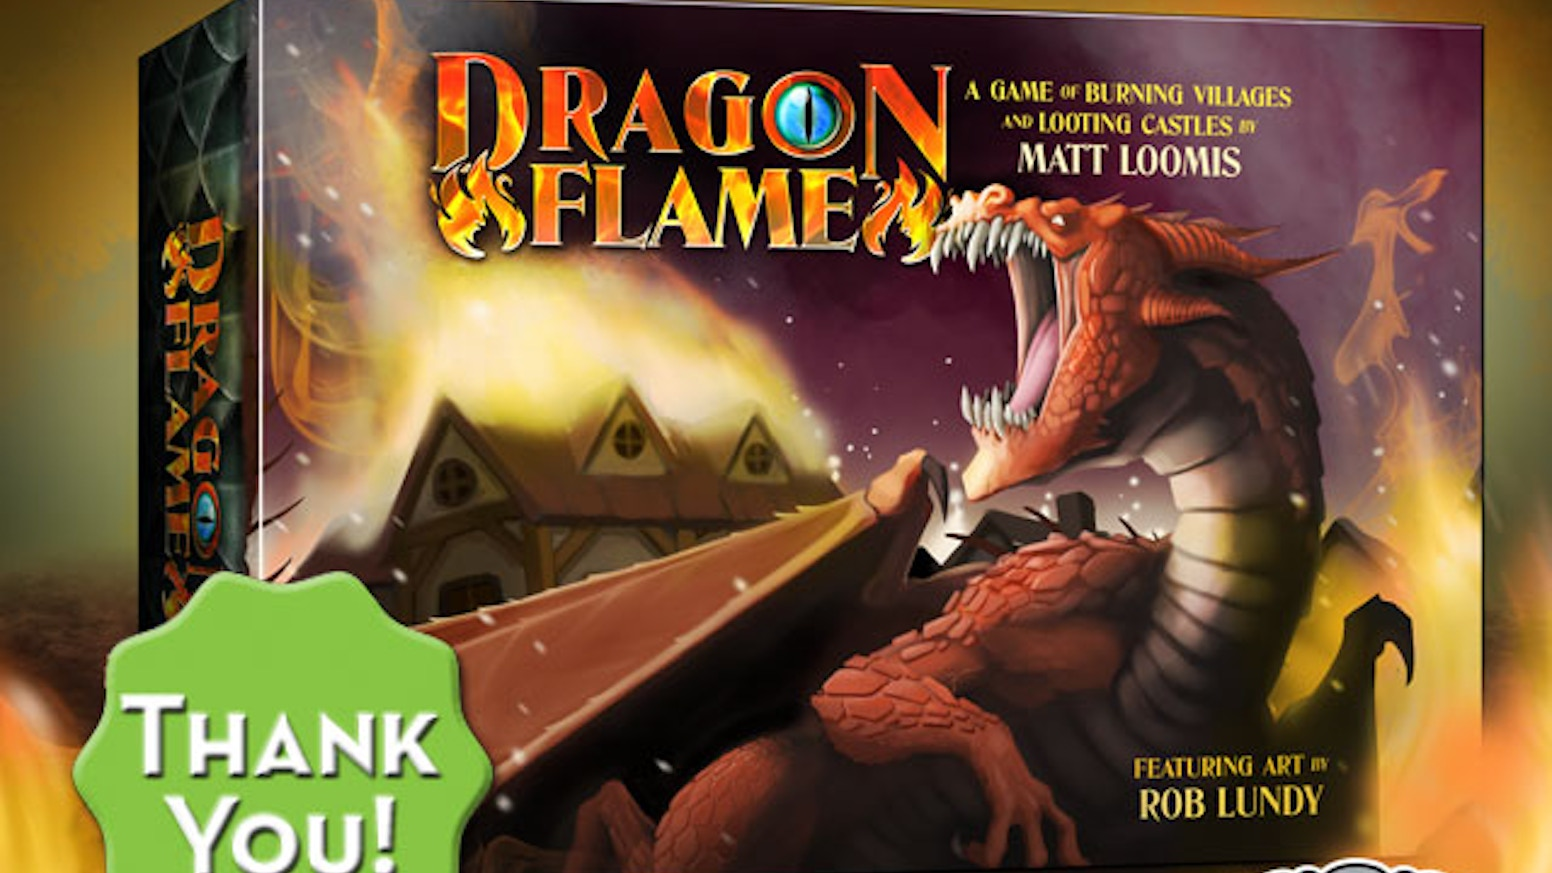 Be a dragon! Loot castles! Burn villages! Battle knights!  Dragonflame is 30-minute card game for 2-5 players with fire in their veins.